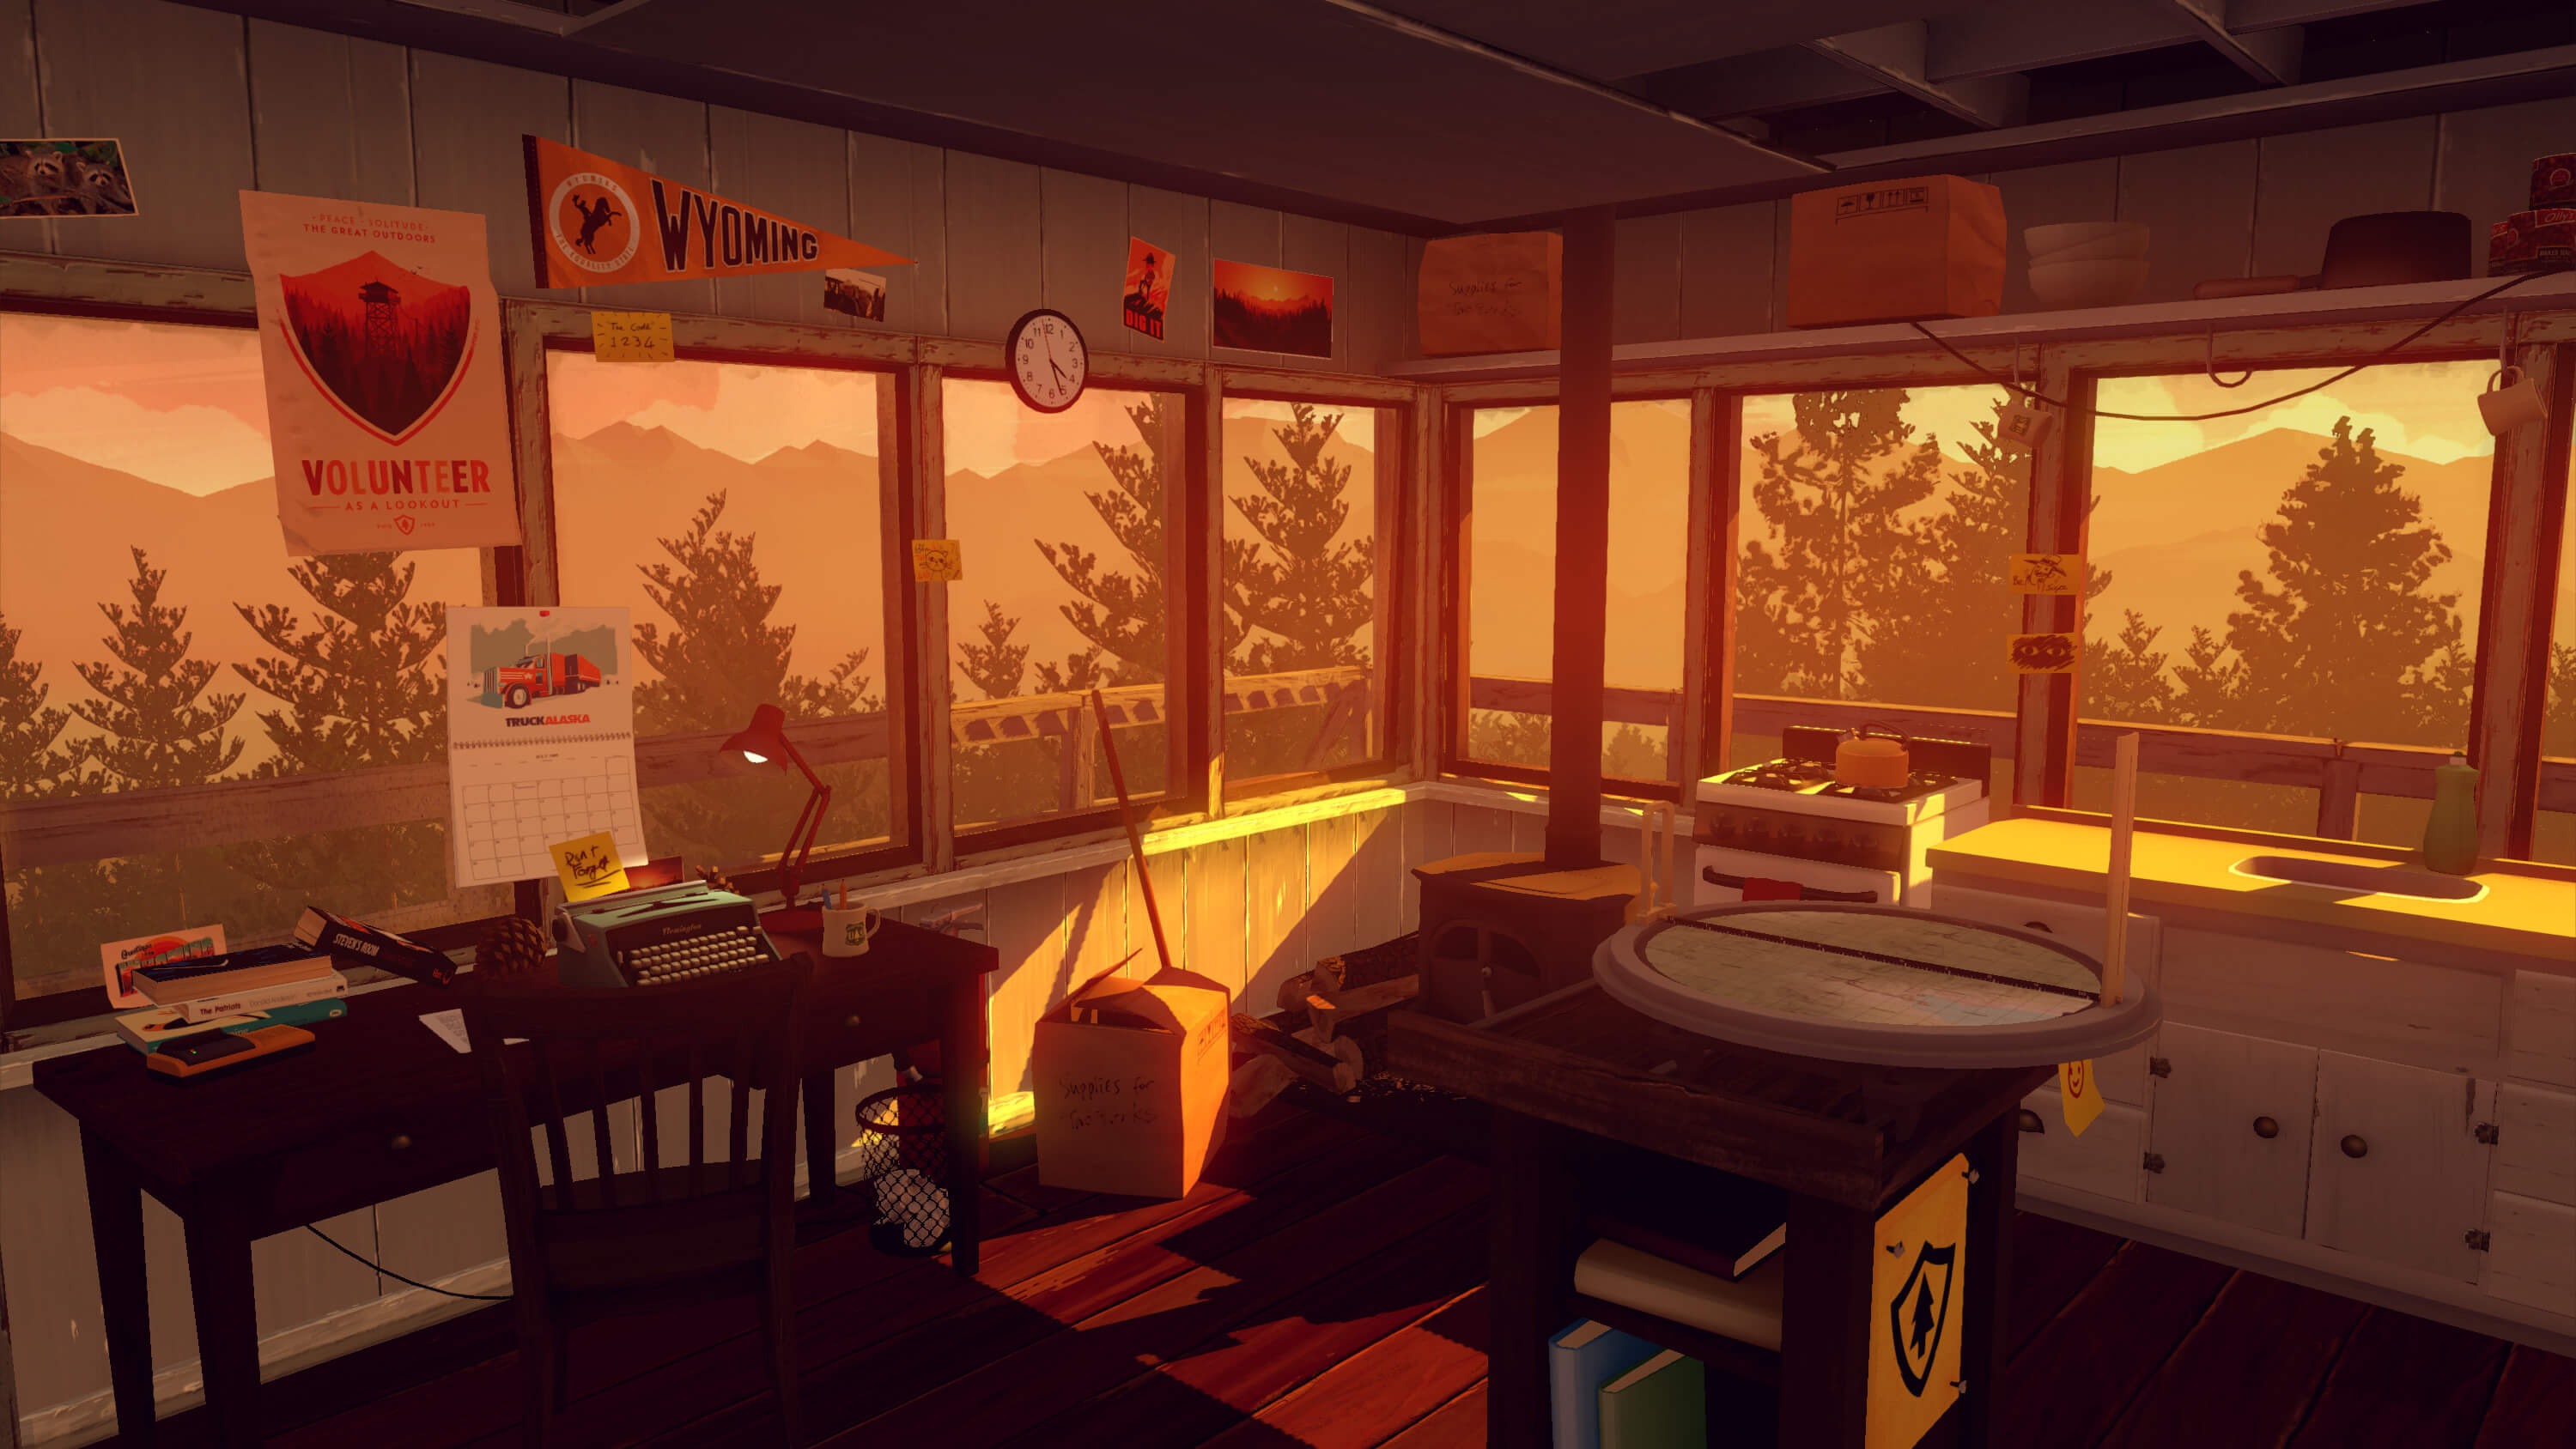 Firewatch Review-Bombed After PewDiePie's Racist DMCA Incident